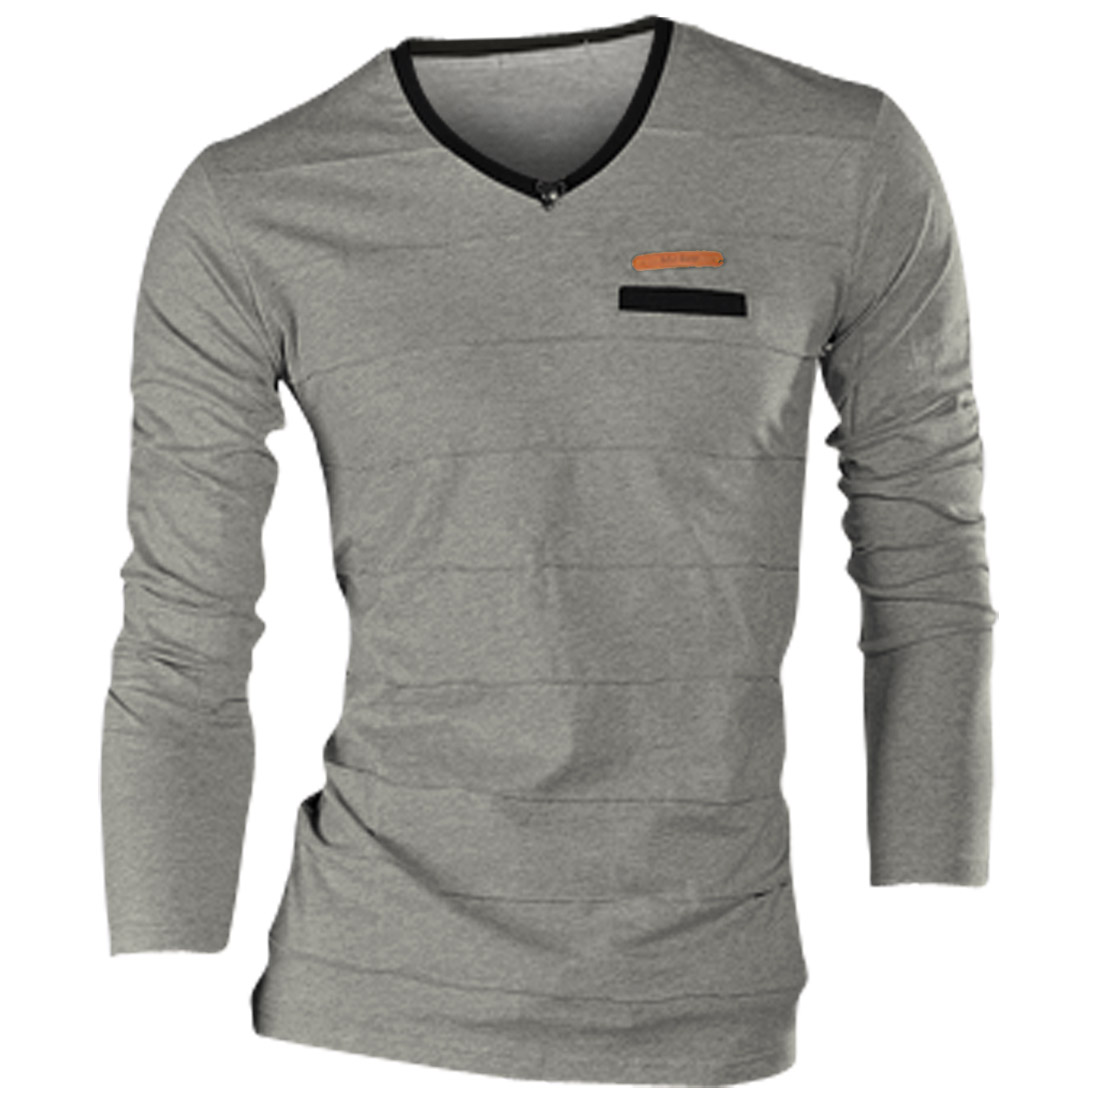 Men Faux Leather Detail V-Neck Slim Gray Tee Shirt S